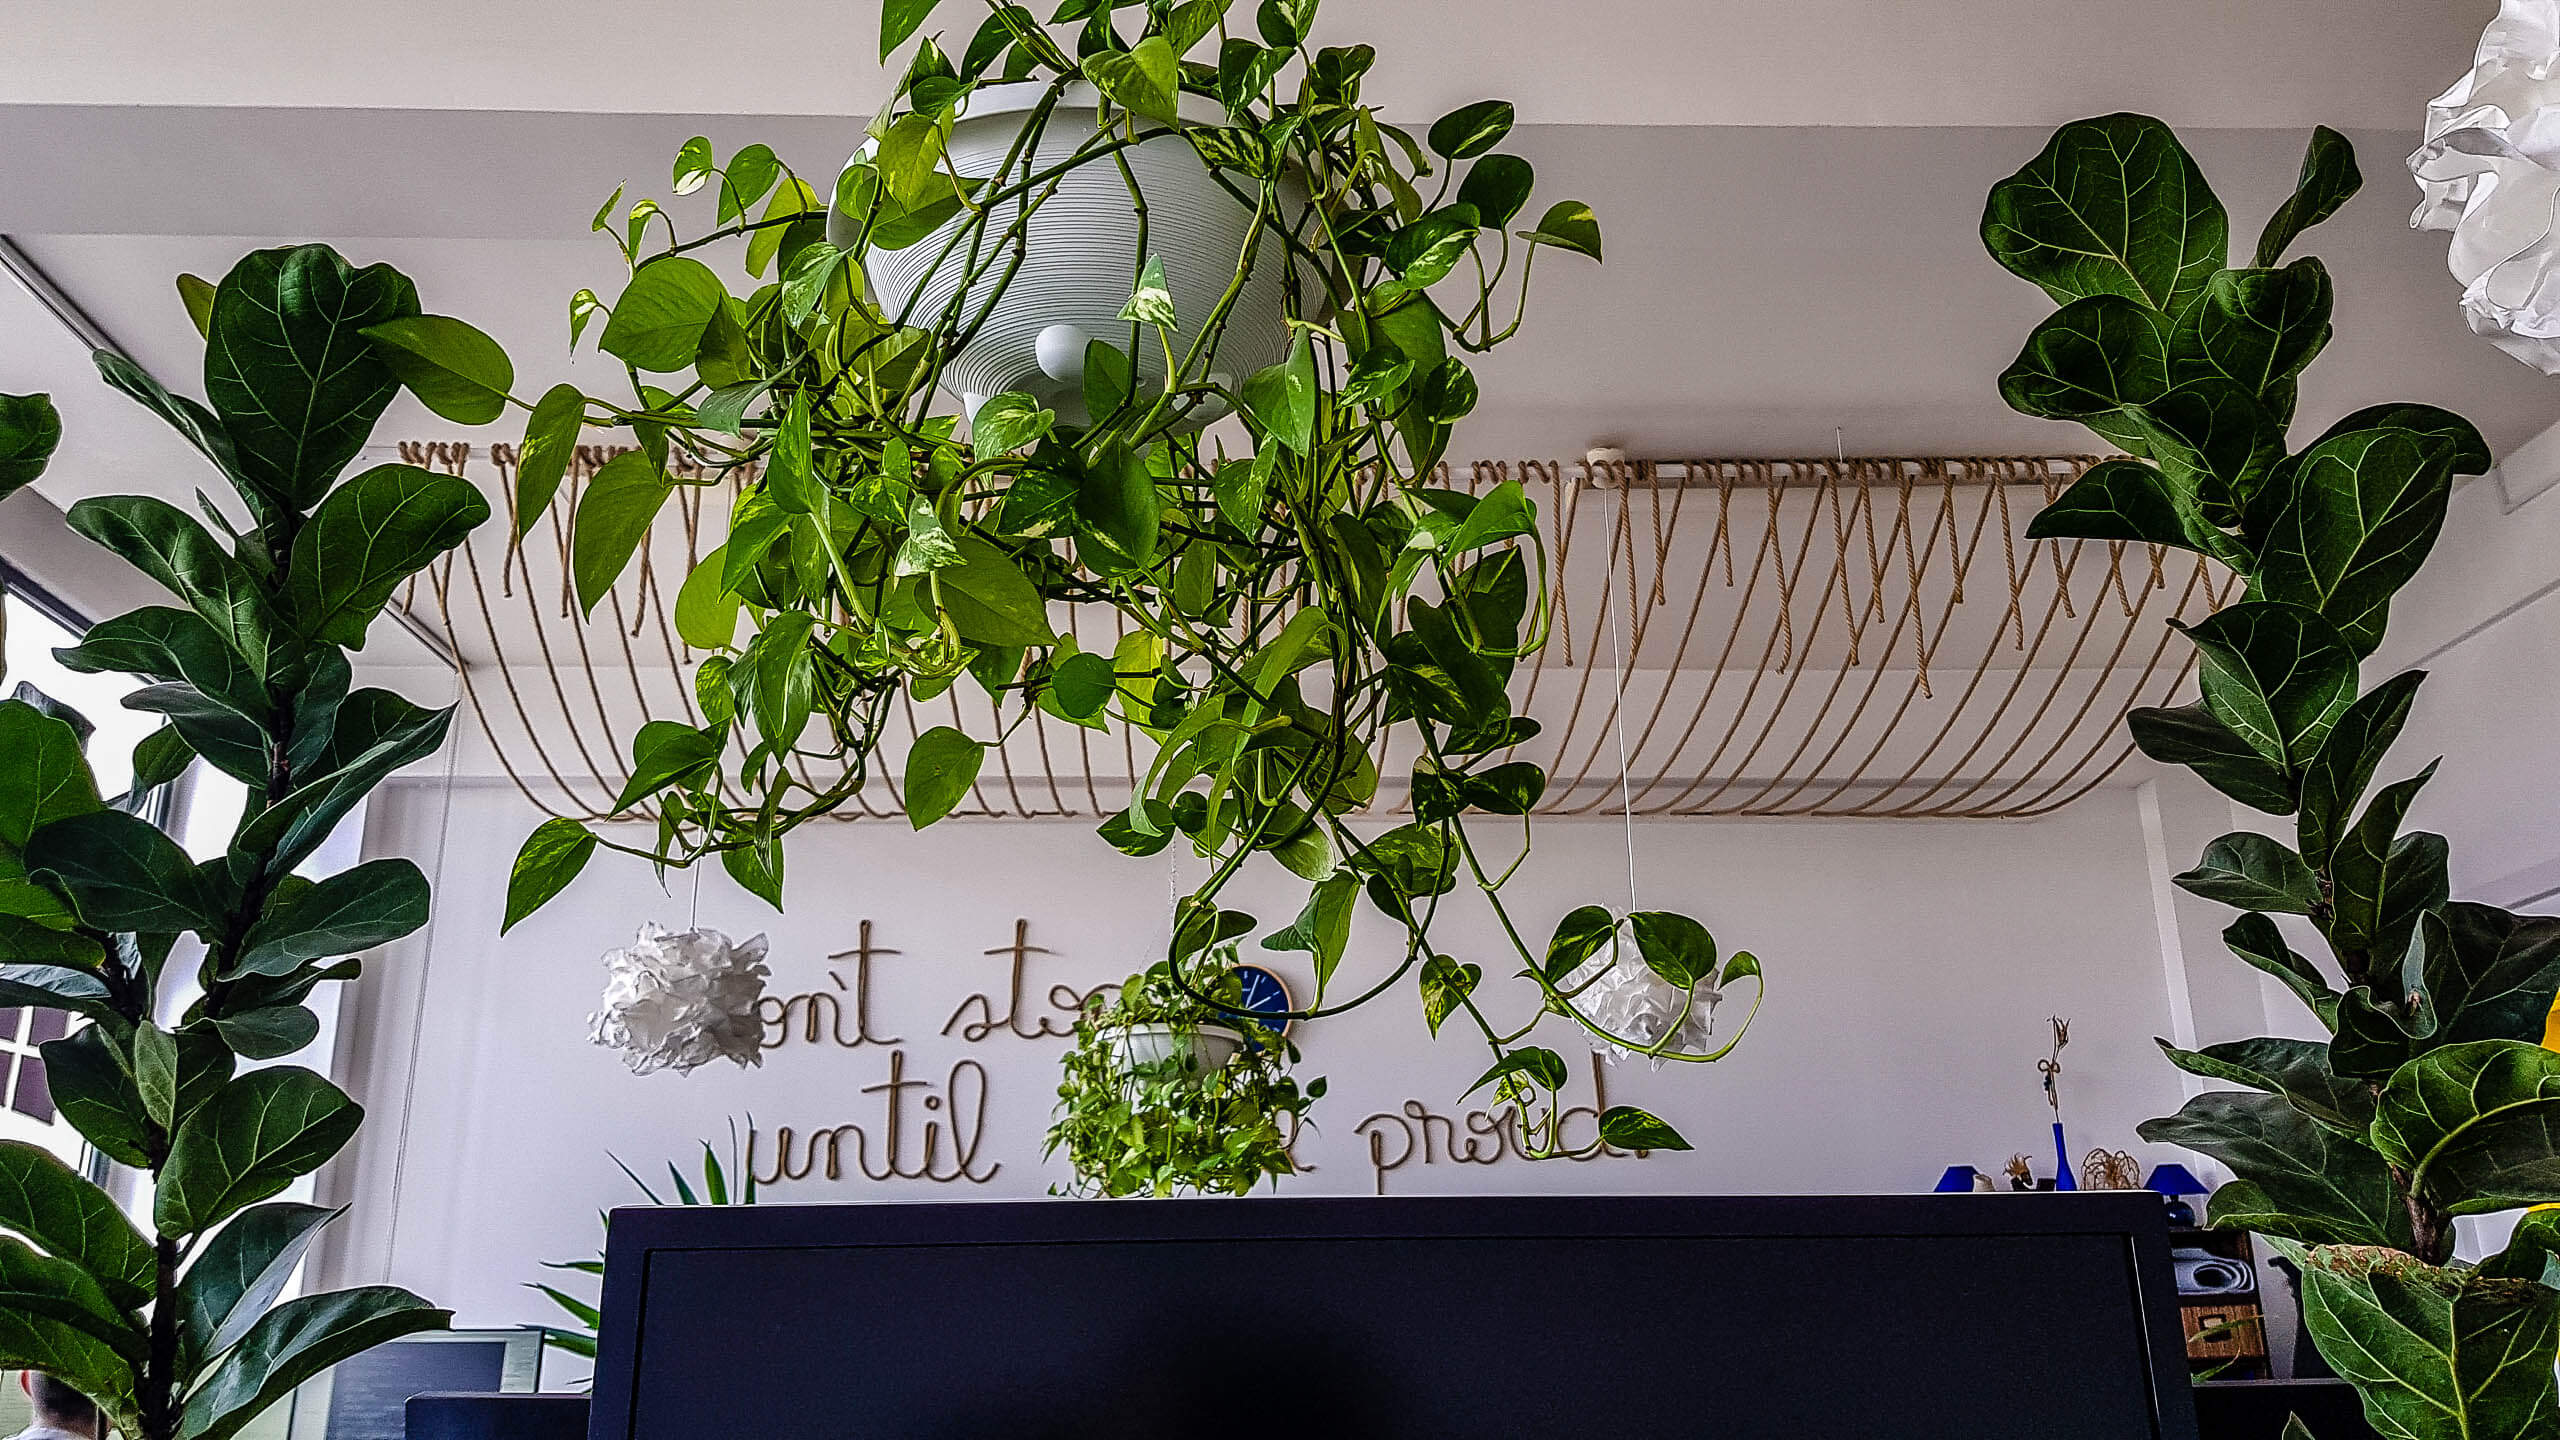 Our Previous Office – Plants, Decorations and a Personal Touch